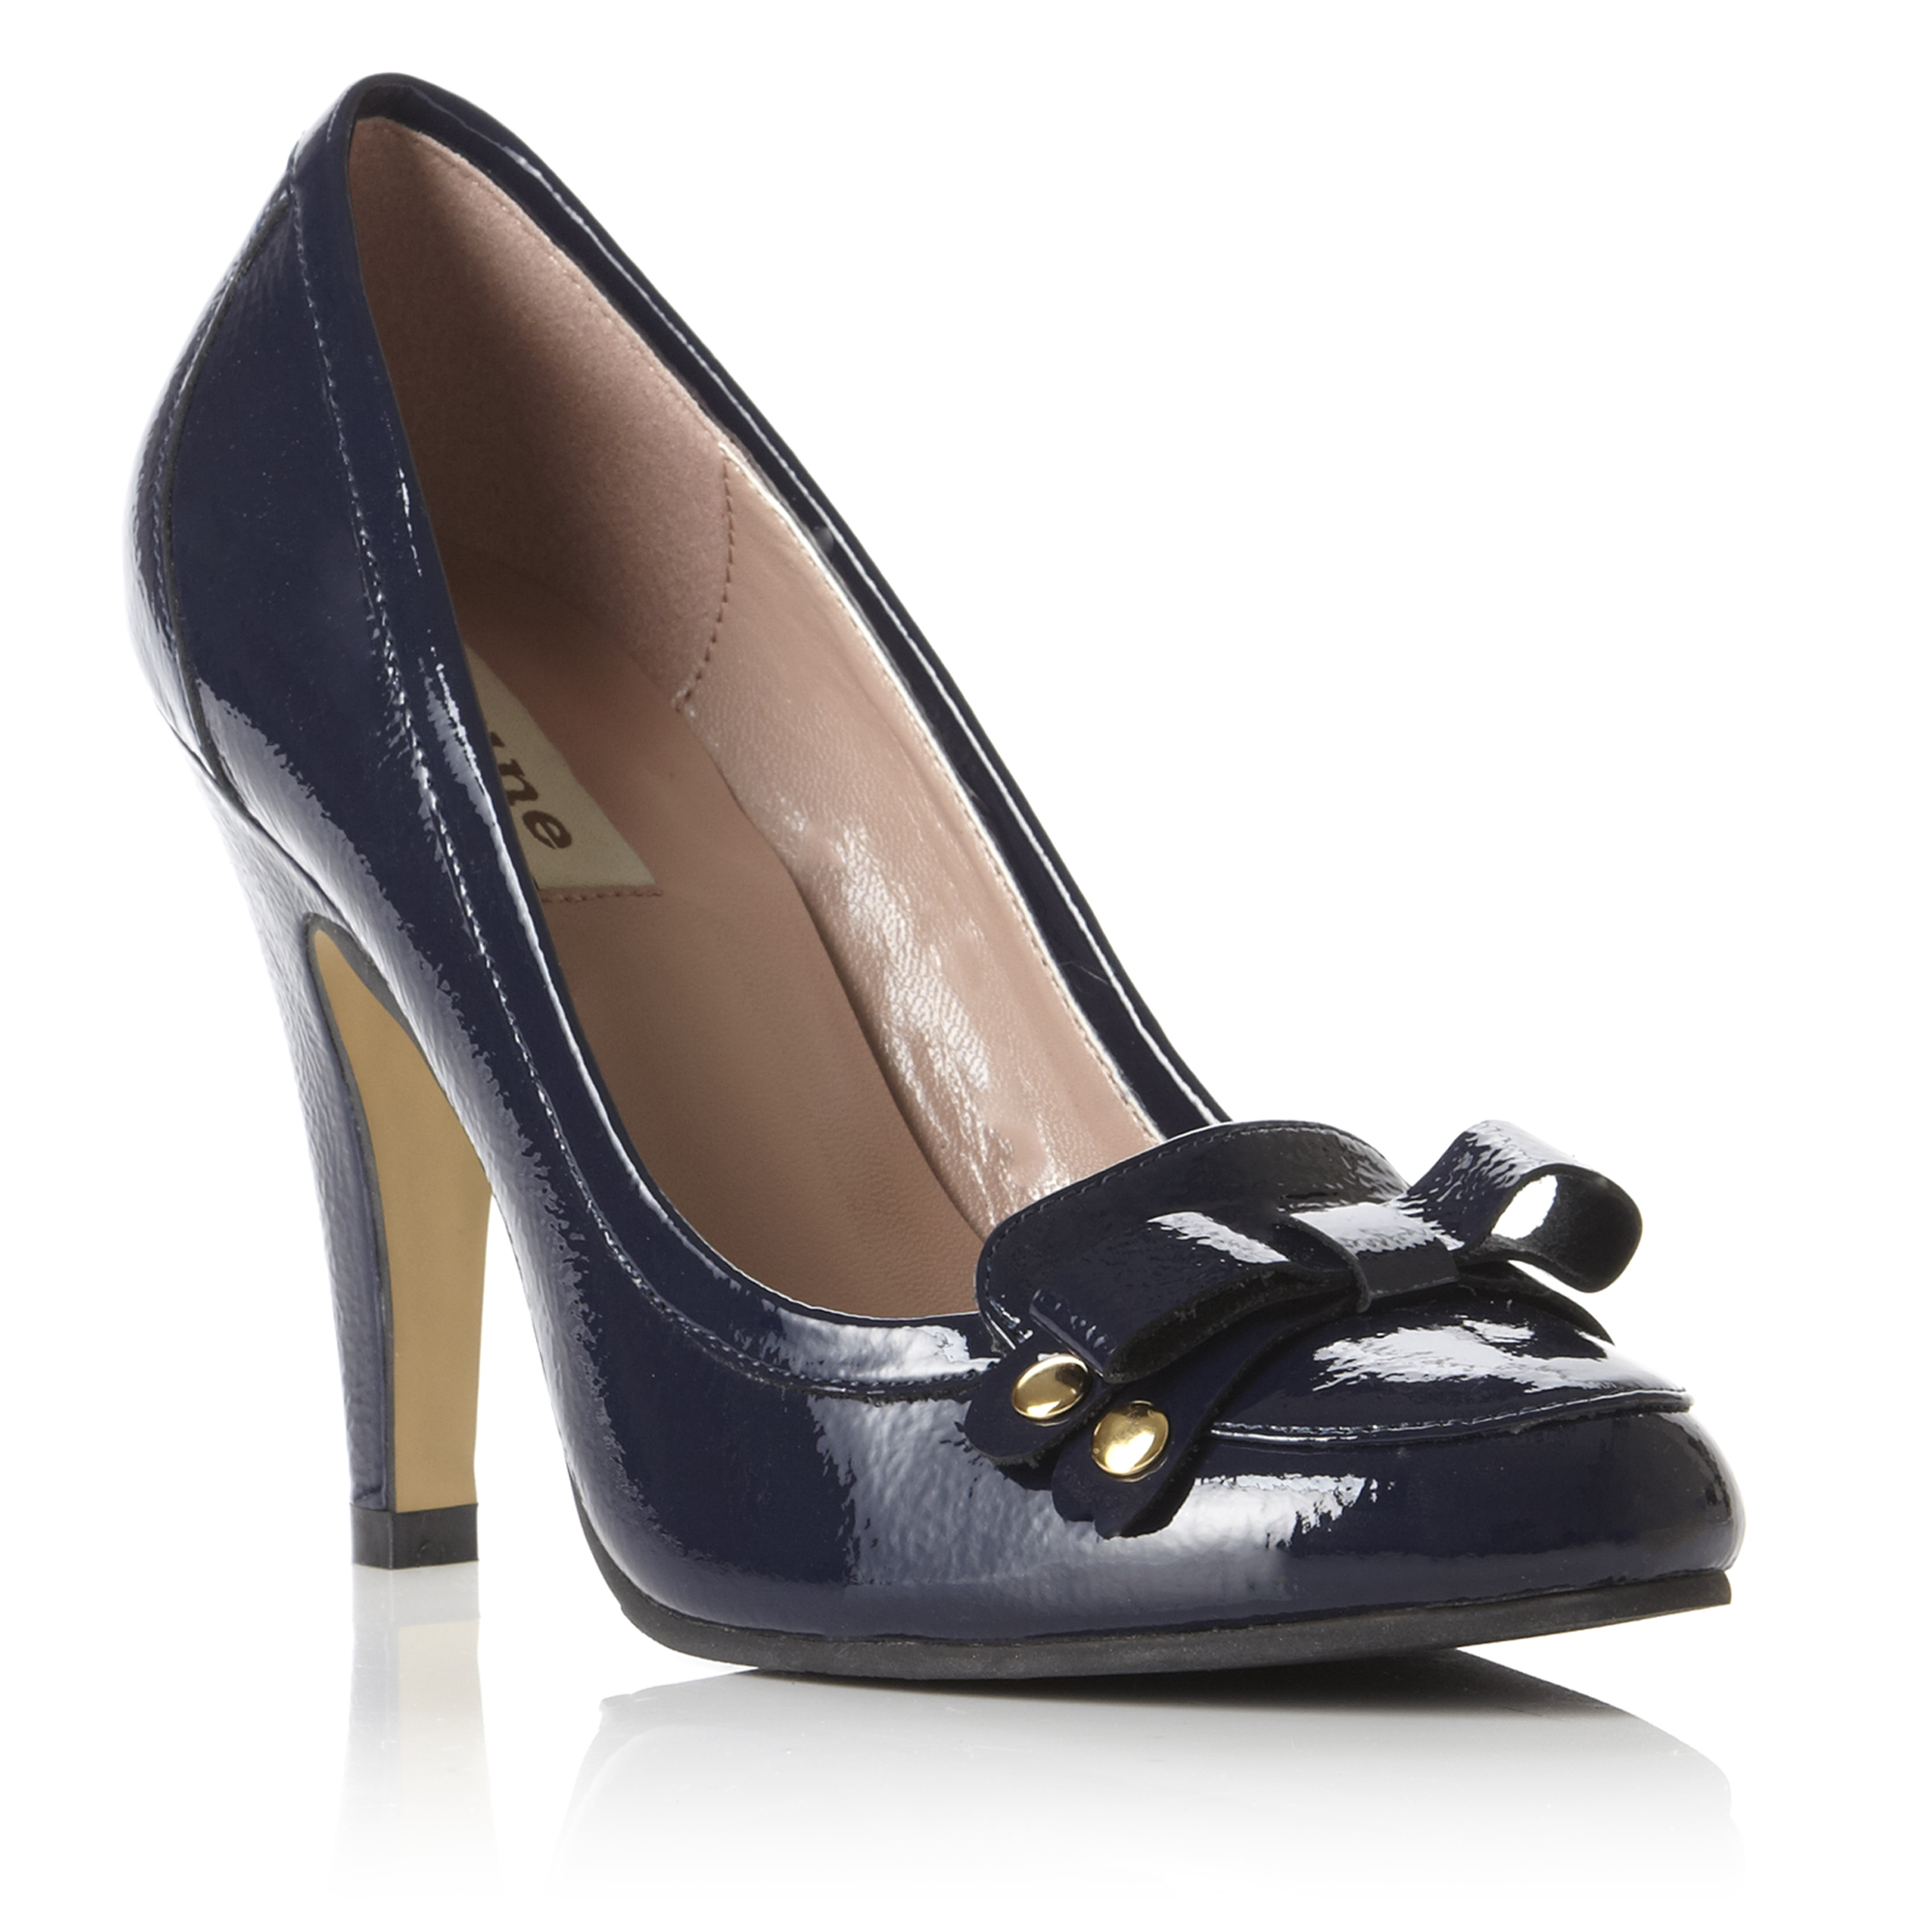 DUNE LADIES AUDIOFLY WOMENS NAVY BLUE PATENT BOW HEELED COURT SHOES ... 157ee174000a